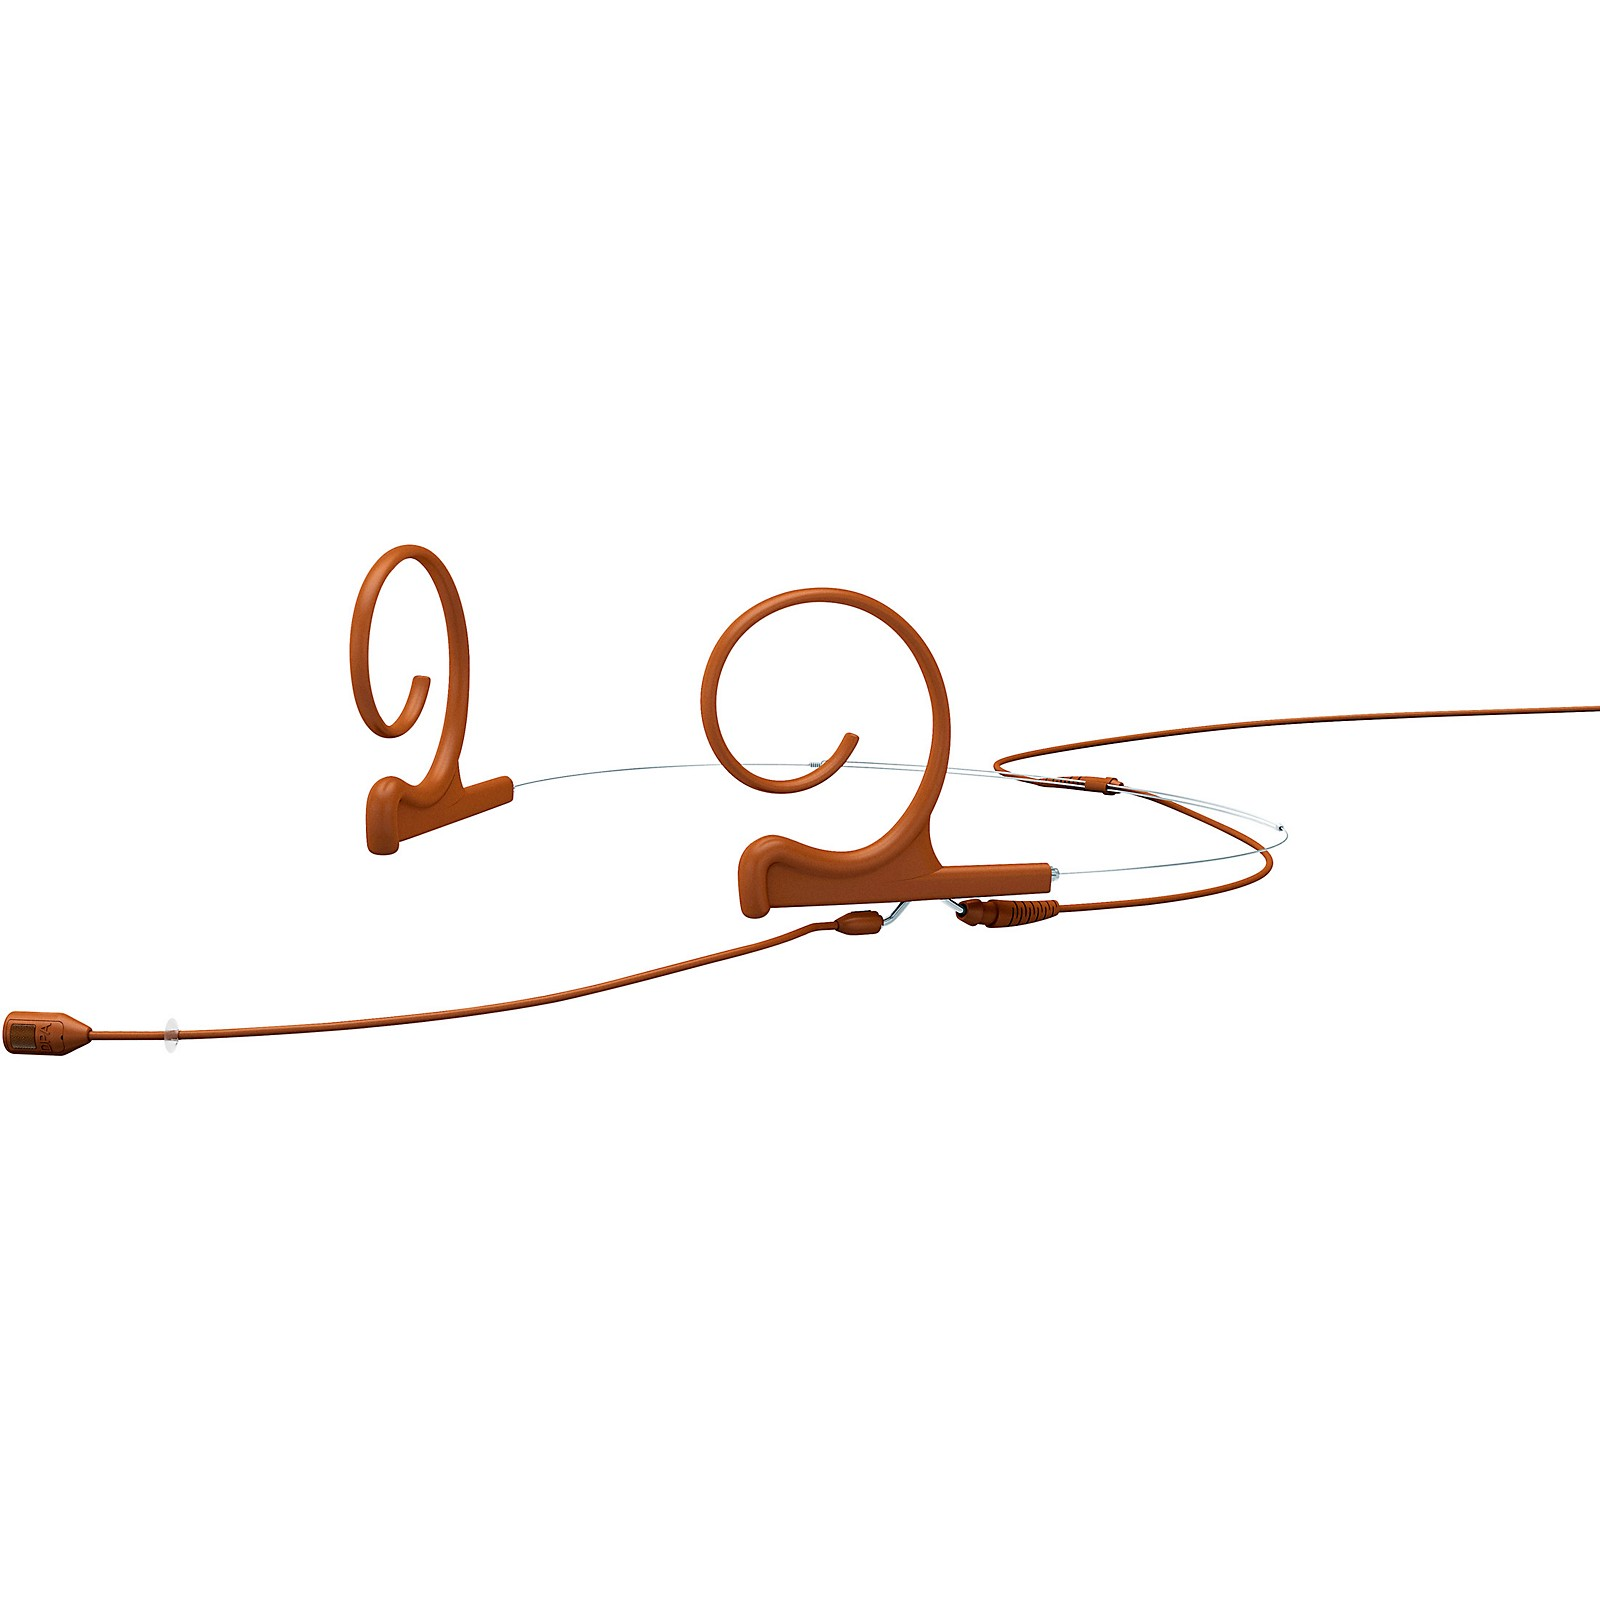 DPA Microphones d:fine FID88 capsule Directional Headset Microphone—Dual ear, 100mm boom, Brown